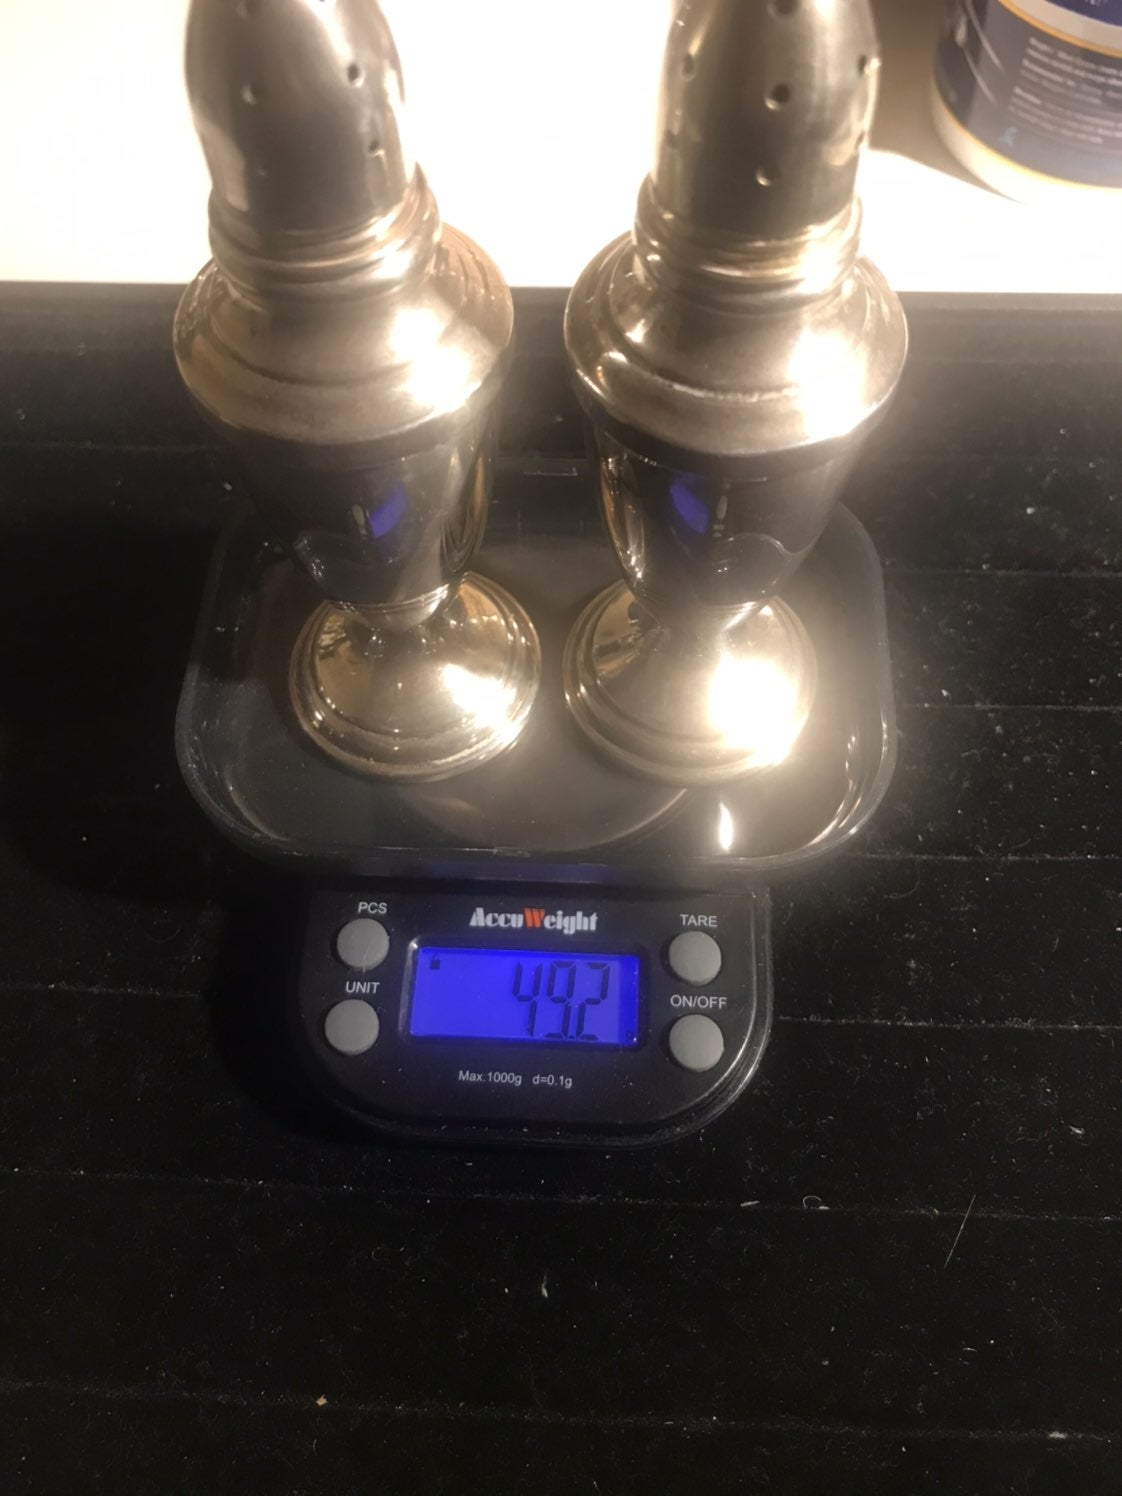 Towle silver shakers. Not weighted